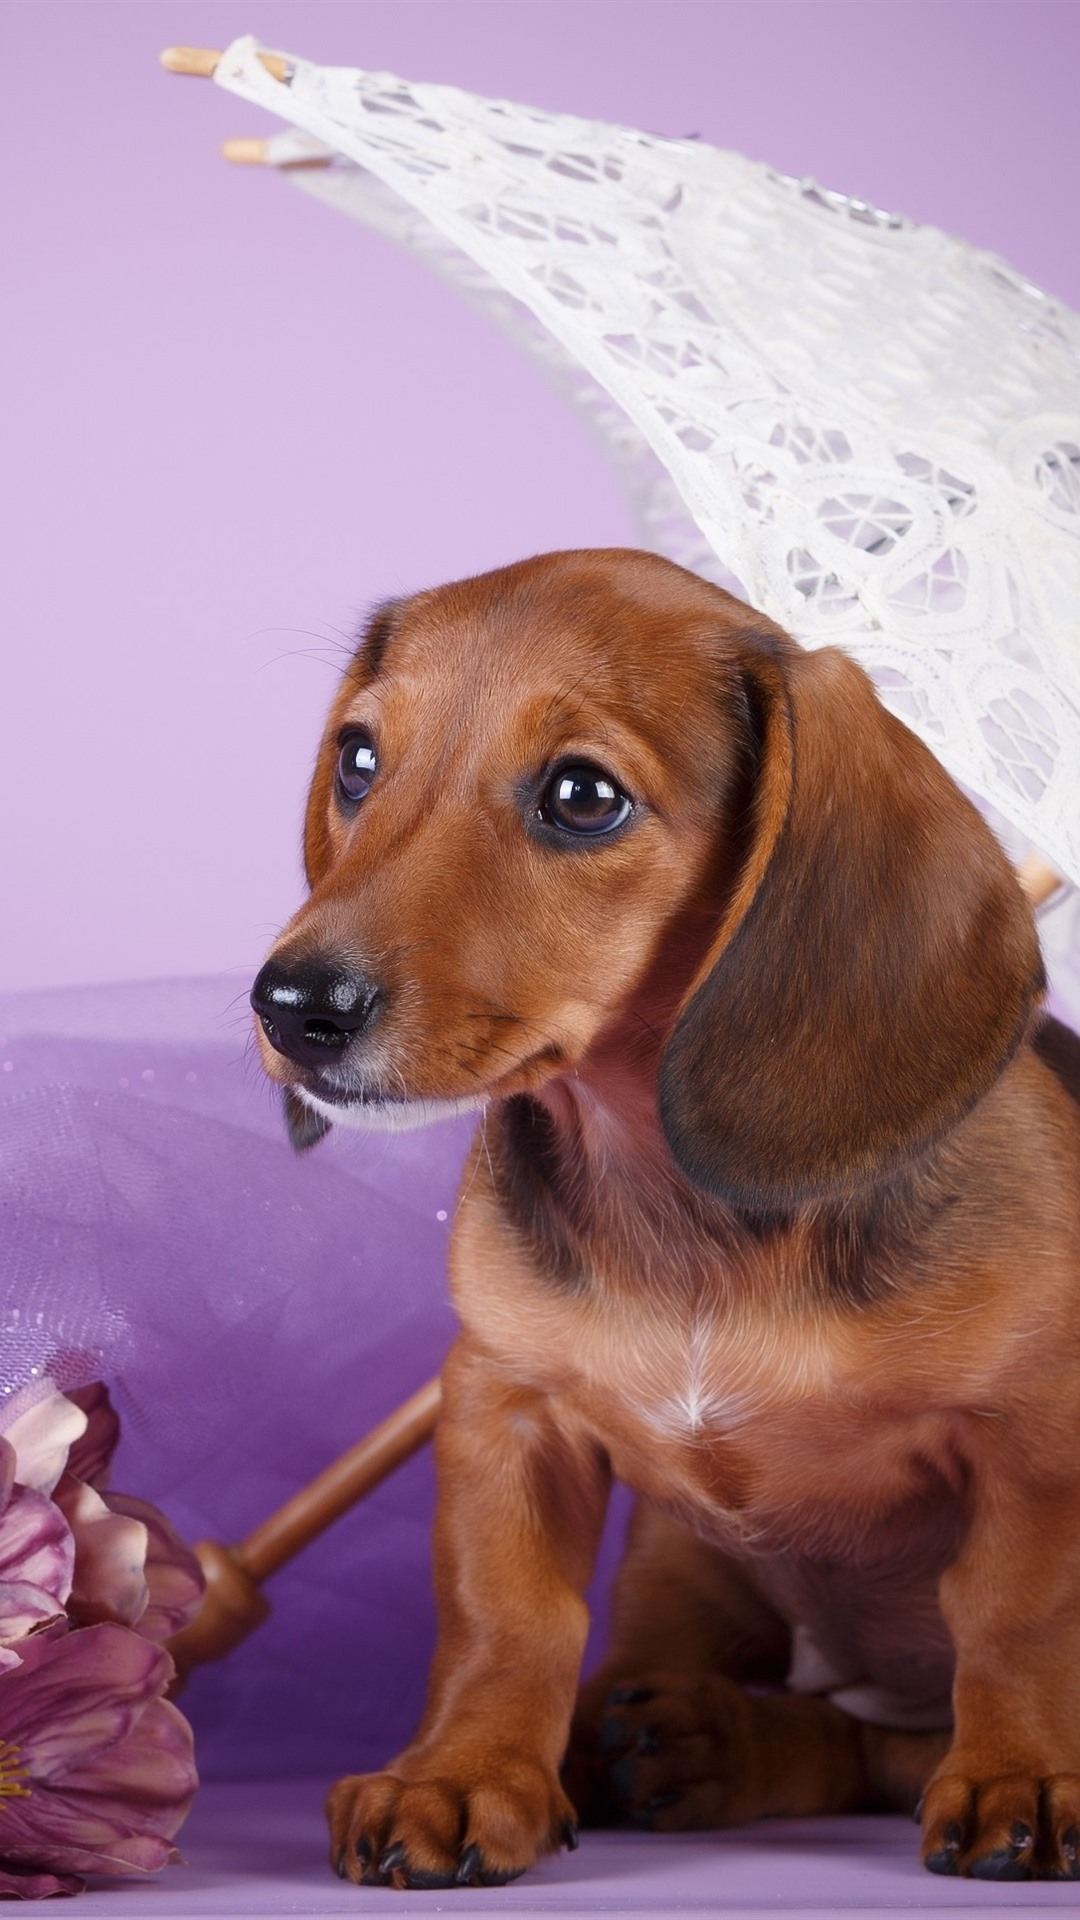 Brown Dog Dachshund Umbrella Pink Flowers 1080x1920 Iphone 8 7 6 6s Plus Wallpaper Background Picture Image